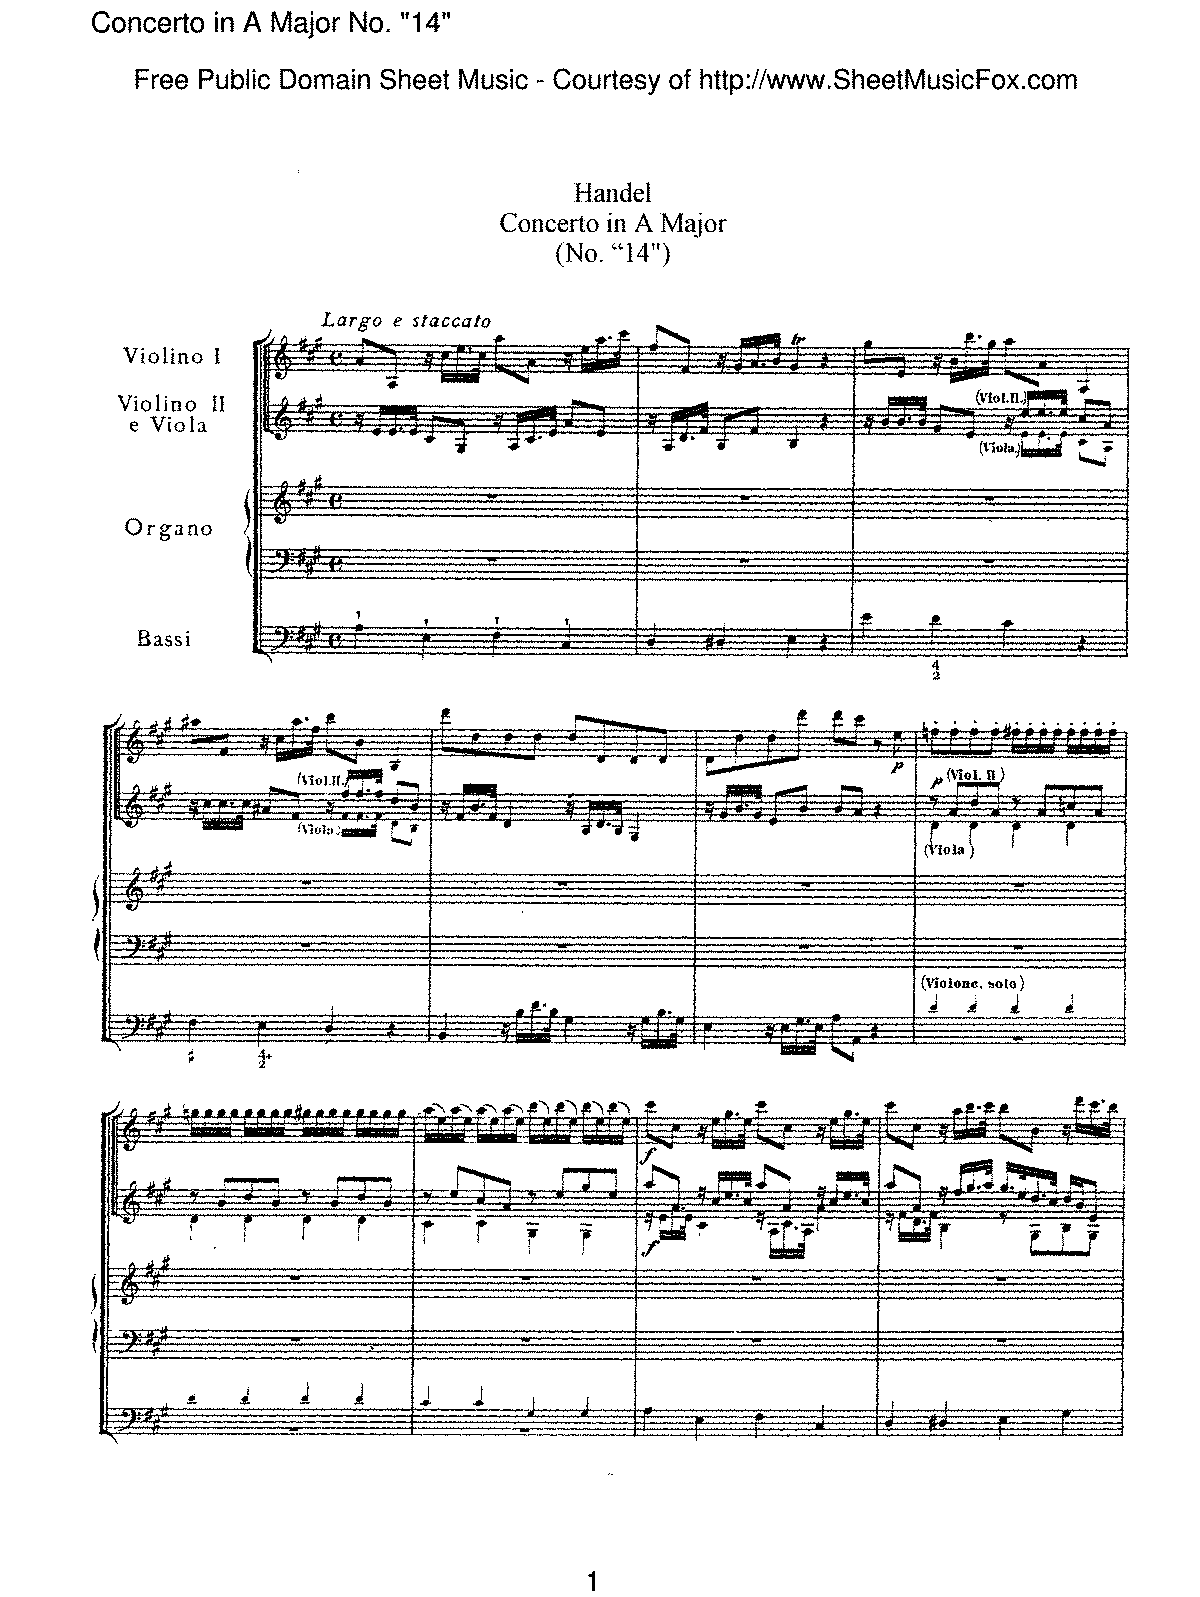 Handel - Concerto in A major, No. '14'.pdf